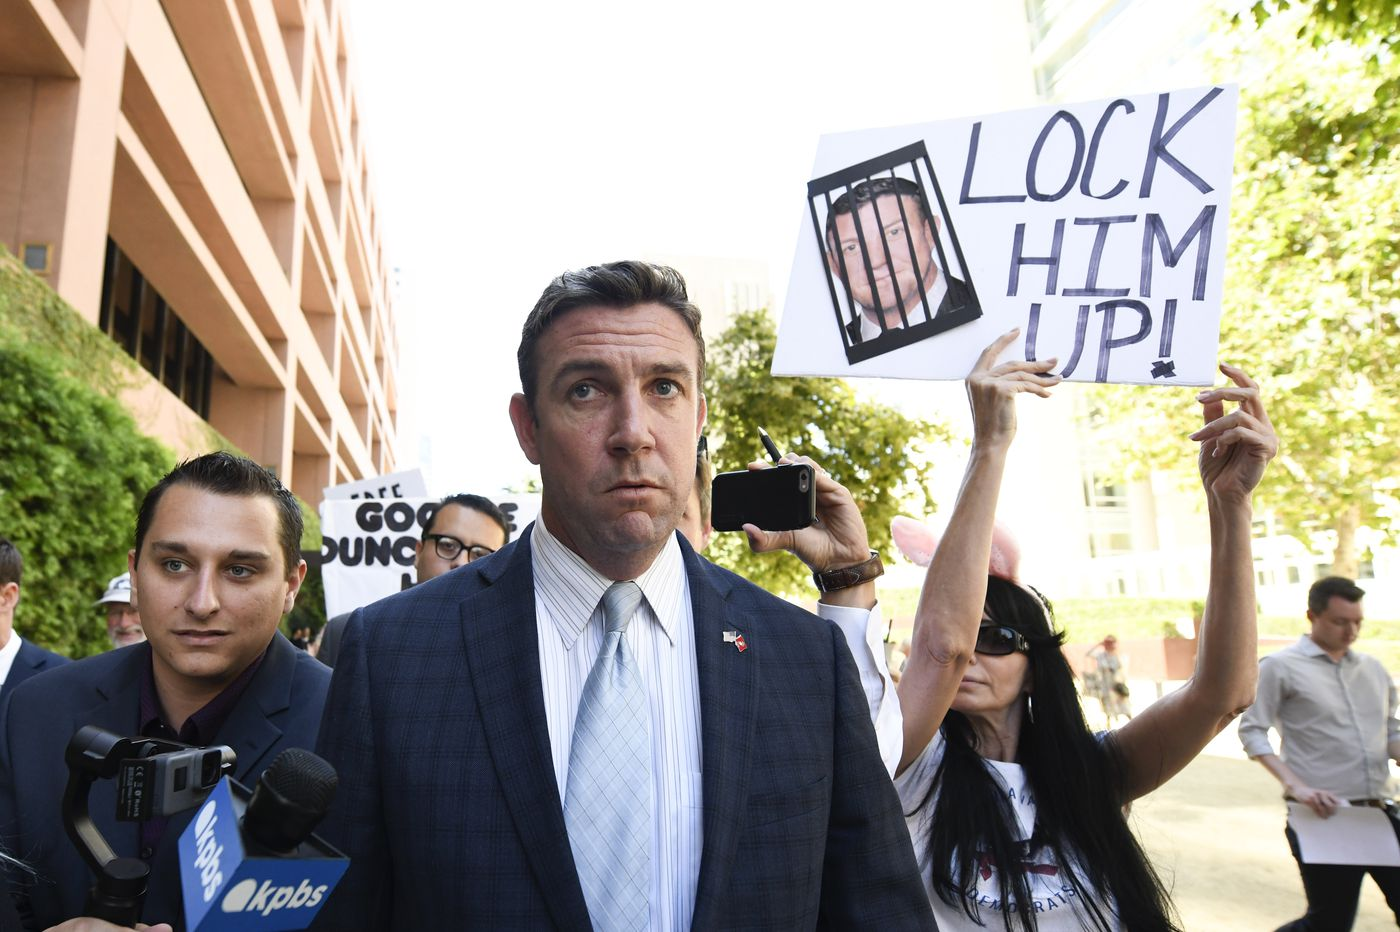 California congressman Duncan Hunter says he will plead guilty to corruption charges